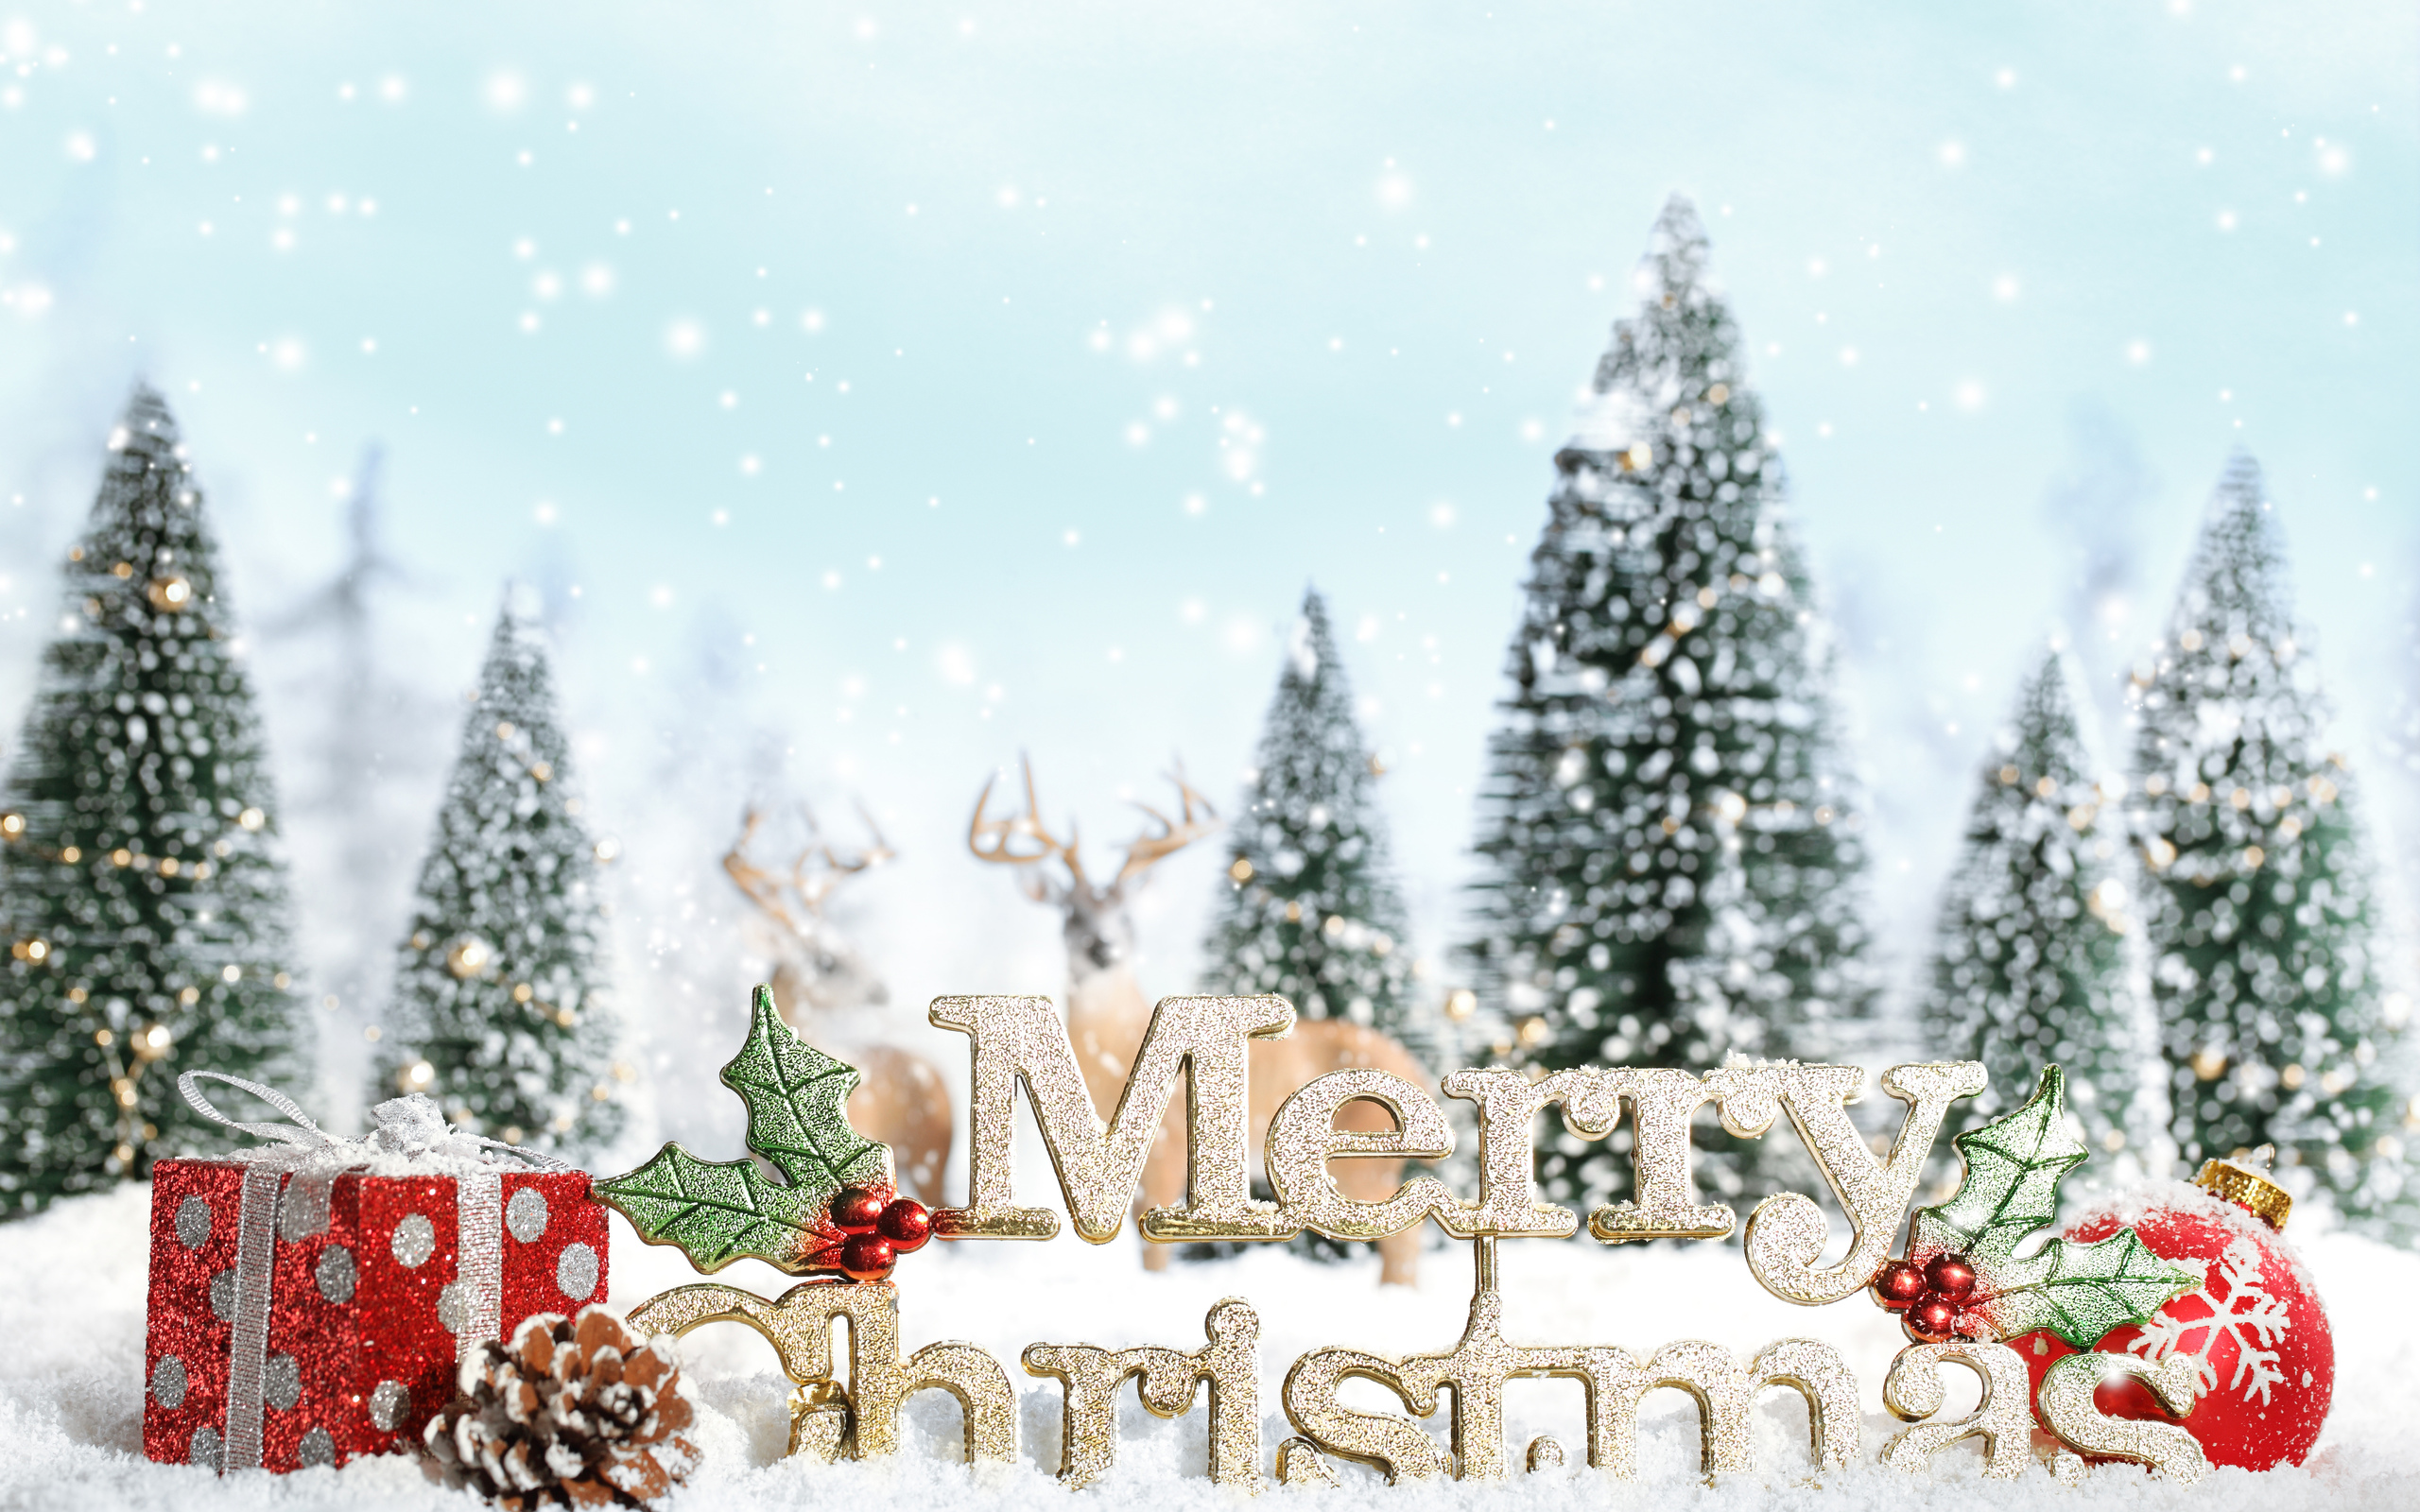 Merry X Mas 2016 HD Wallpaper 2560x1600